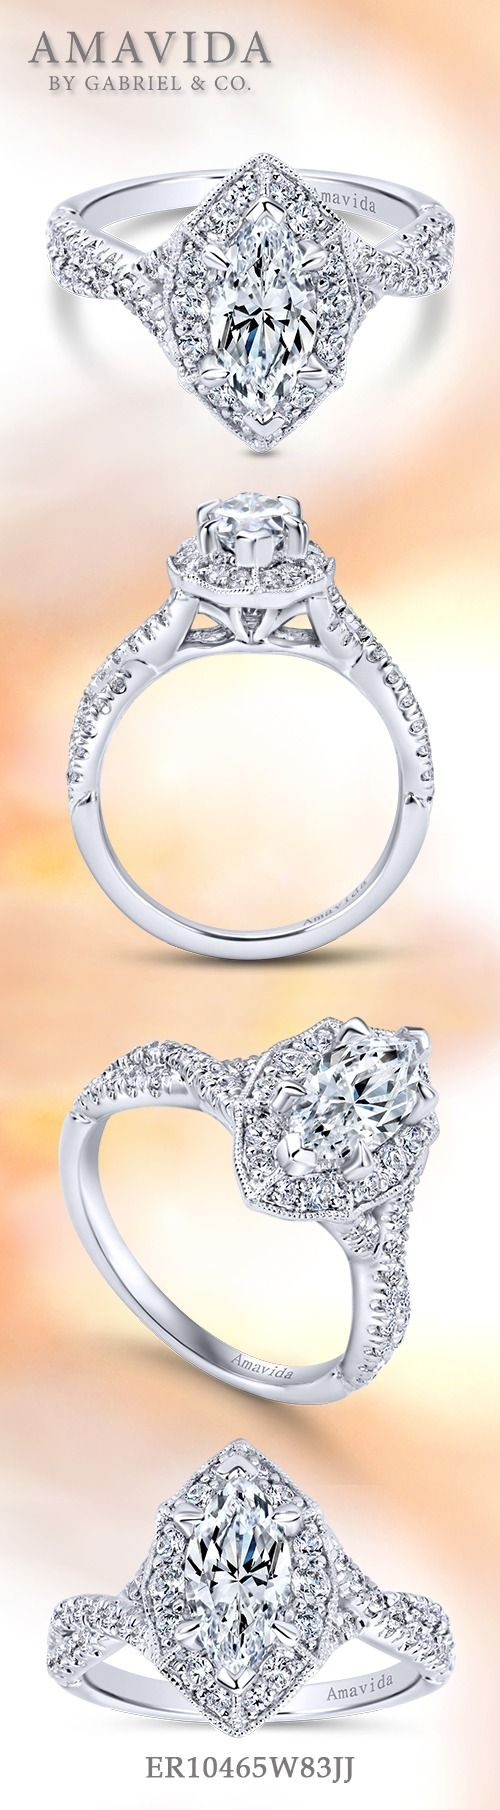 AMAVIDA by Gabriel & Co.-Voted #1 Most Preferred Fine Jewelry and Bridal Brand. 18k White Gold Marquise Halo  Engagement Ring